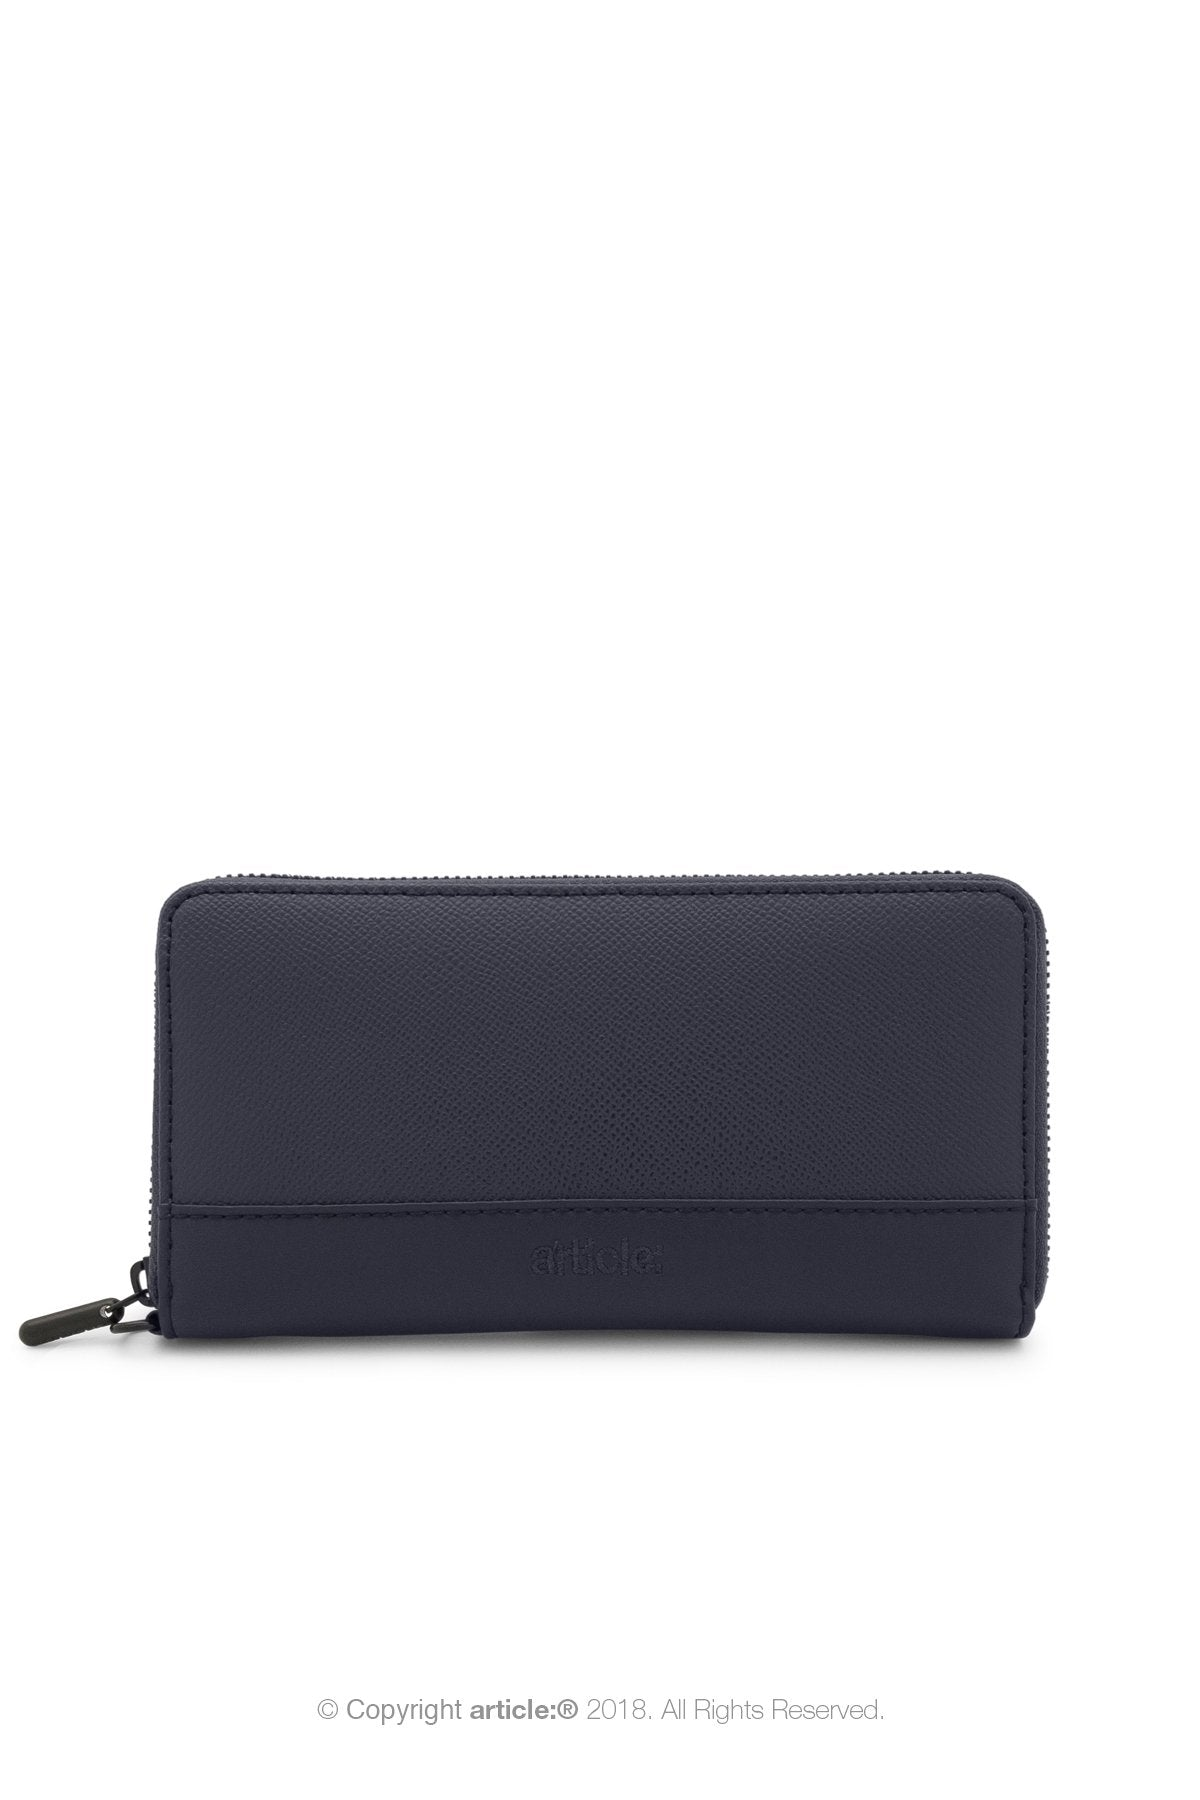 article: #230 Wallet - Indigo